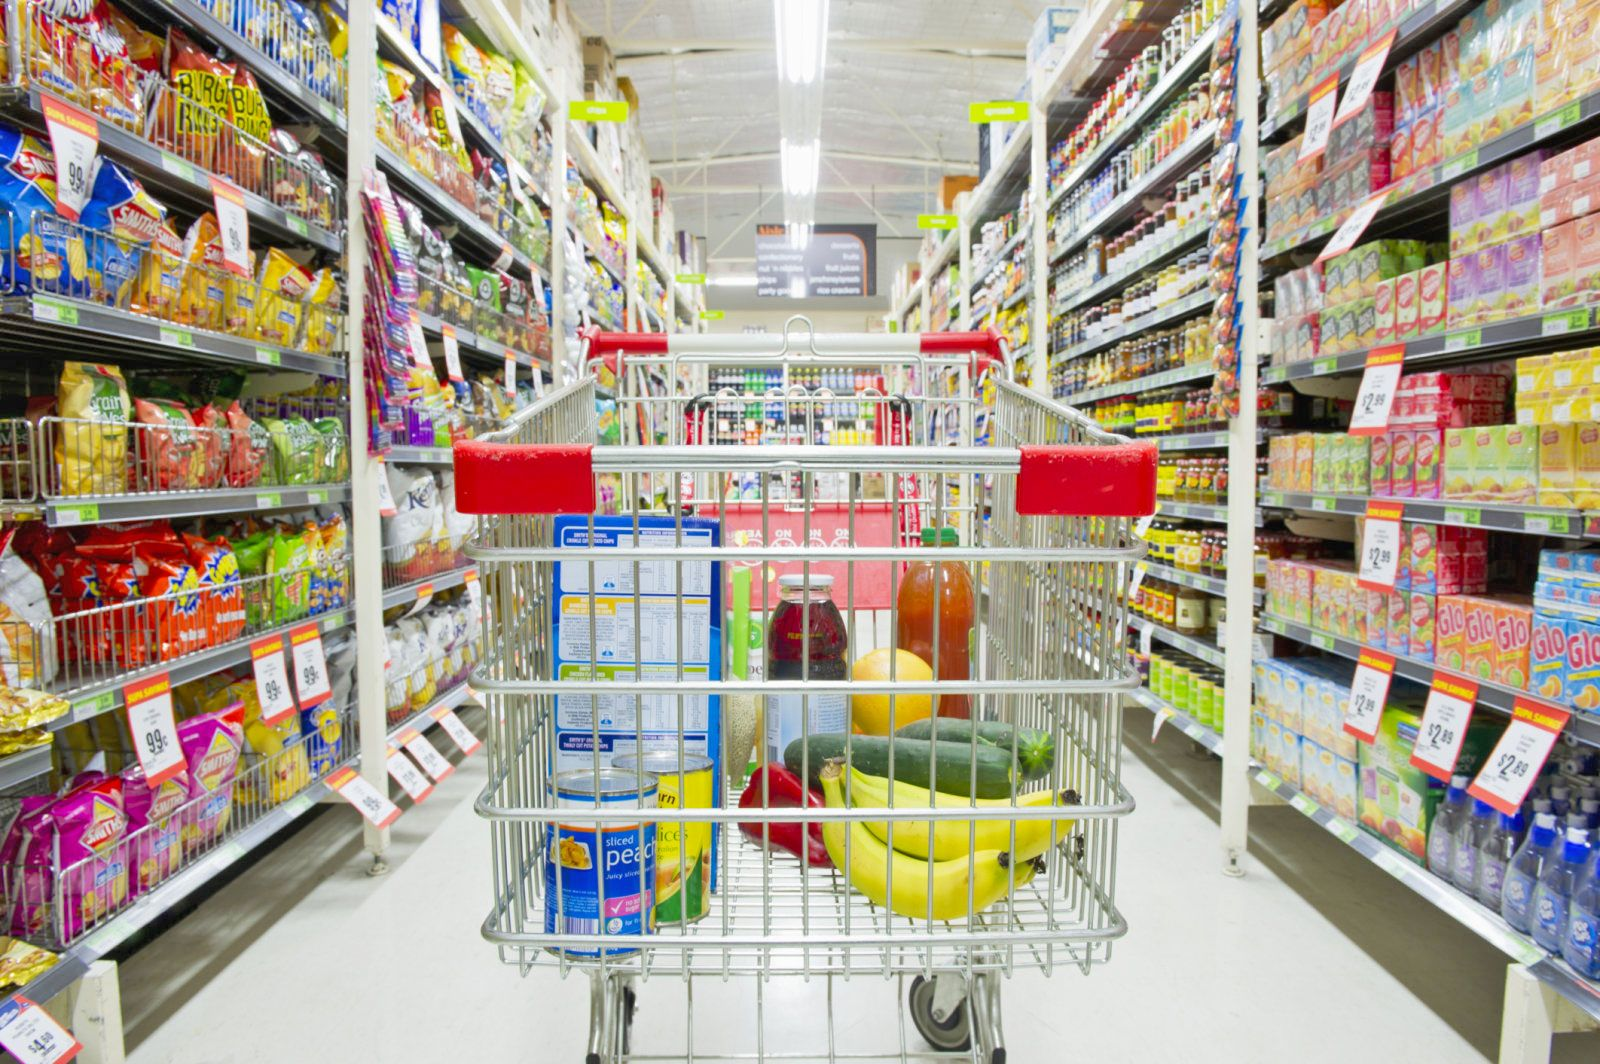 Amazon S Next Retail Outlets Are Drive Up Grocery Stores Engadget Grocery Store Grocery Retail Outlet